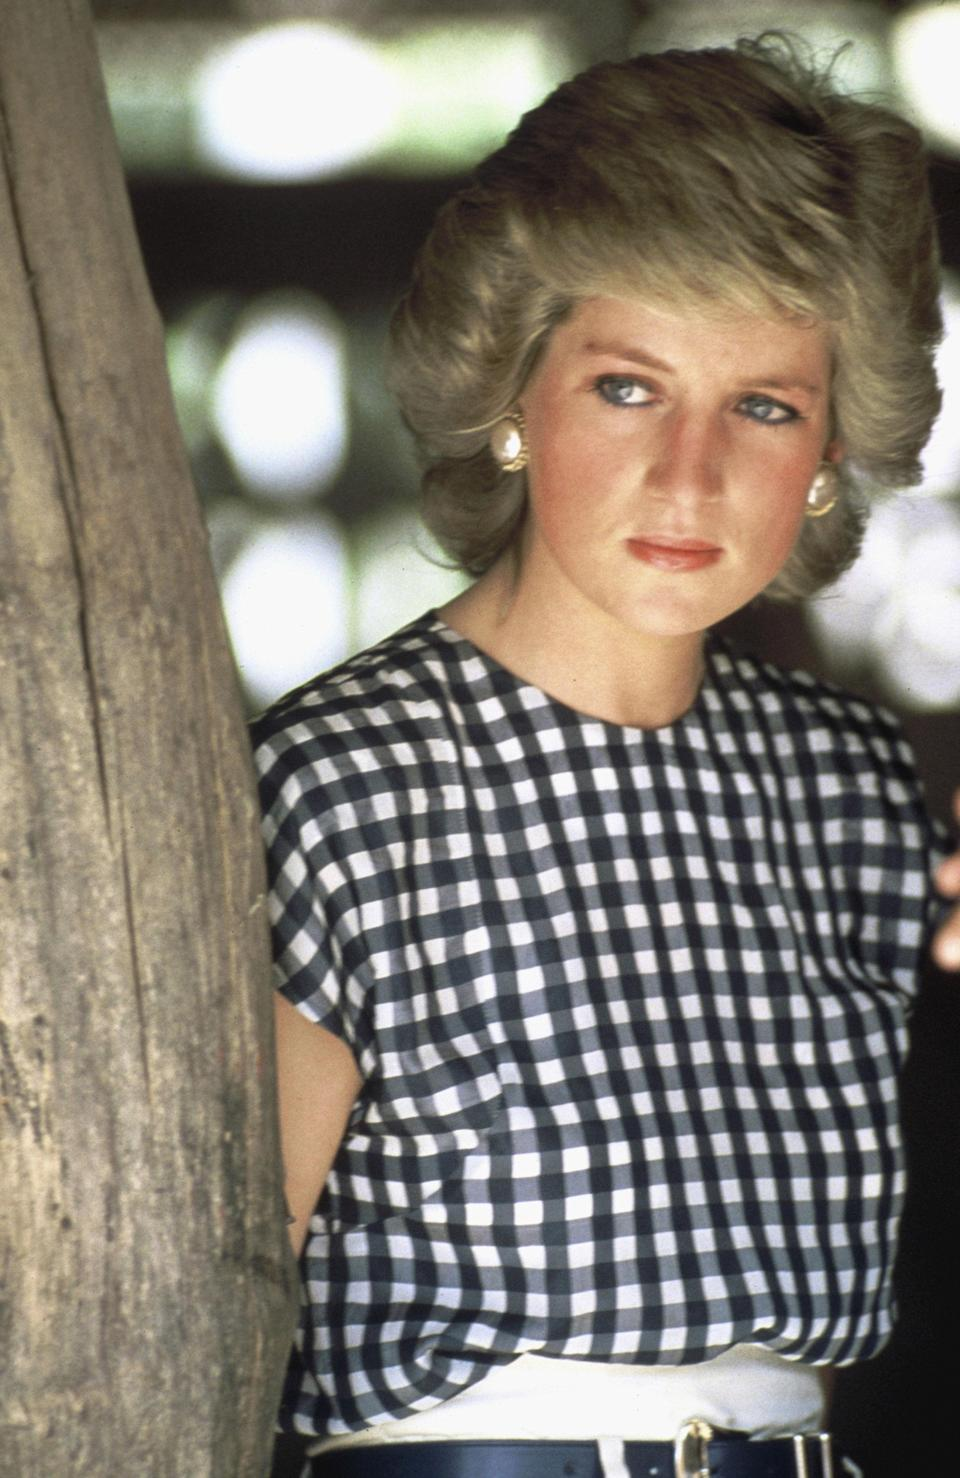 """<p>Princess Diana also told Bashir about her struggles with bulimia, which she said were a result of the stress she felt keeping her marriage publicly intact. """"That's like a secret disease ... You inflict it upon yourself because your self-esteem is at a low ebb, and you don't think you're worthy or valuable ... It's a repetitive pattern which is very destructive to yourself.""""</p><p>Her heart-wrenching honesty is one of the reasons why her sons and daughter-in-law are so passionate about <a href=""""http://www.goodhousekeeping.com/life/parenting/news/a39043/prince-william-fathers-day-letter-mental-health/"""" rel=""""nofollow noopener"""" target=""""_blank"""" data-ylk=""""slk:their own work in mental health"""" class=""""link rapid-noclick-resp"""">their own work in mental health</a>. </p>"""